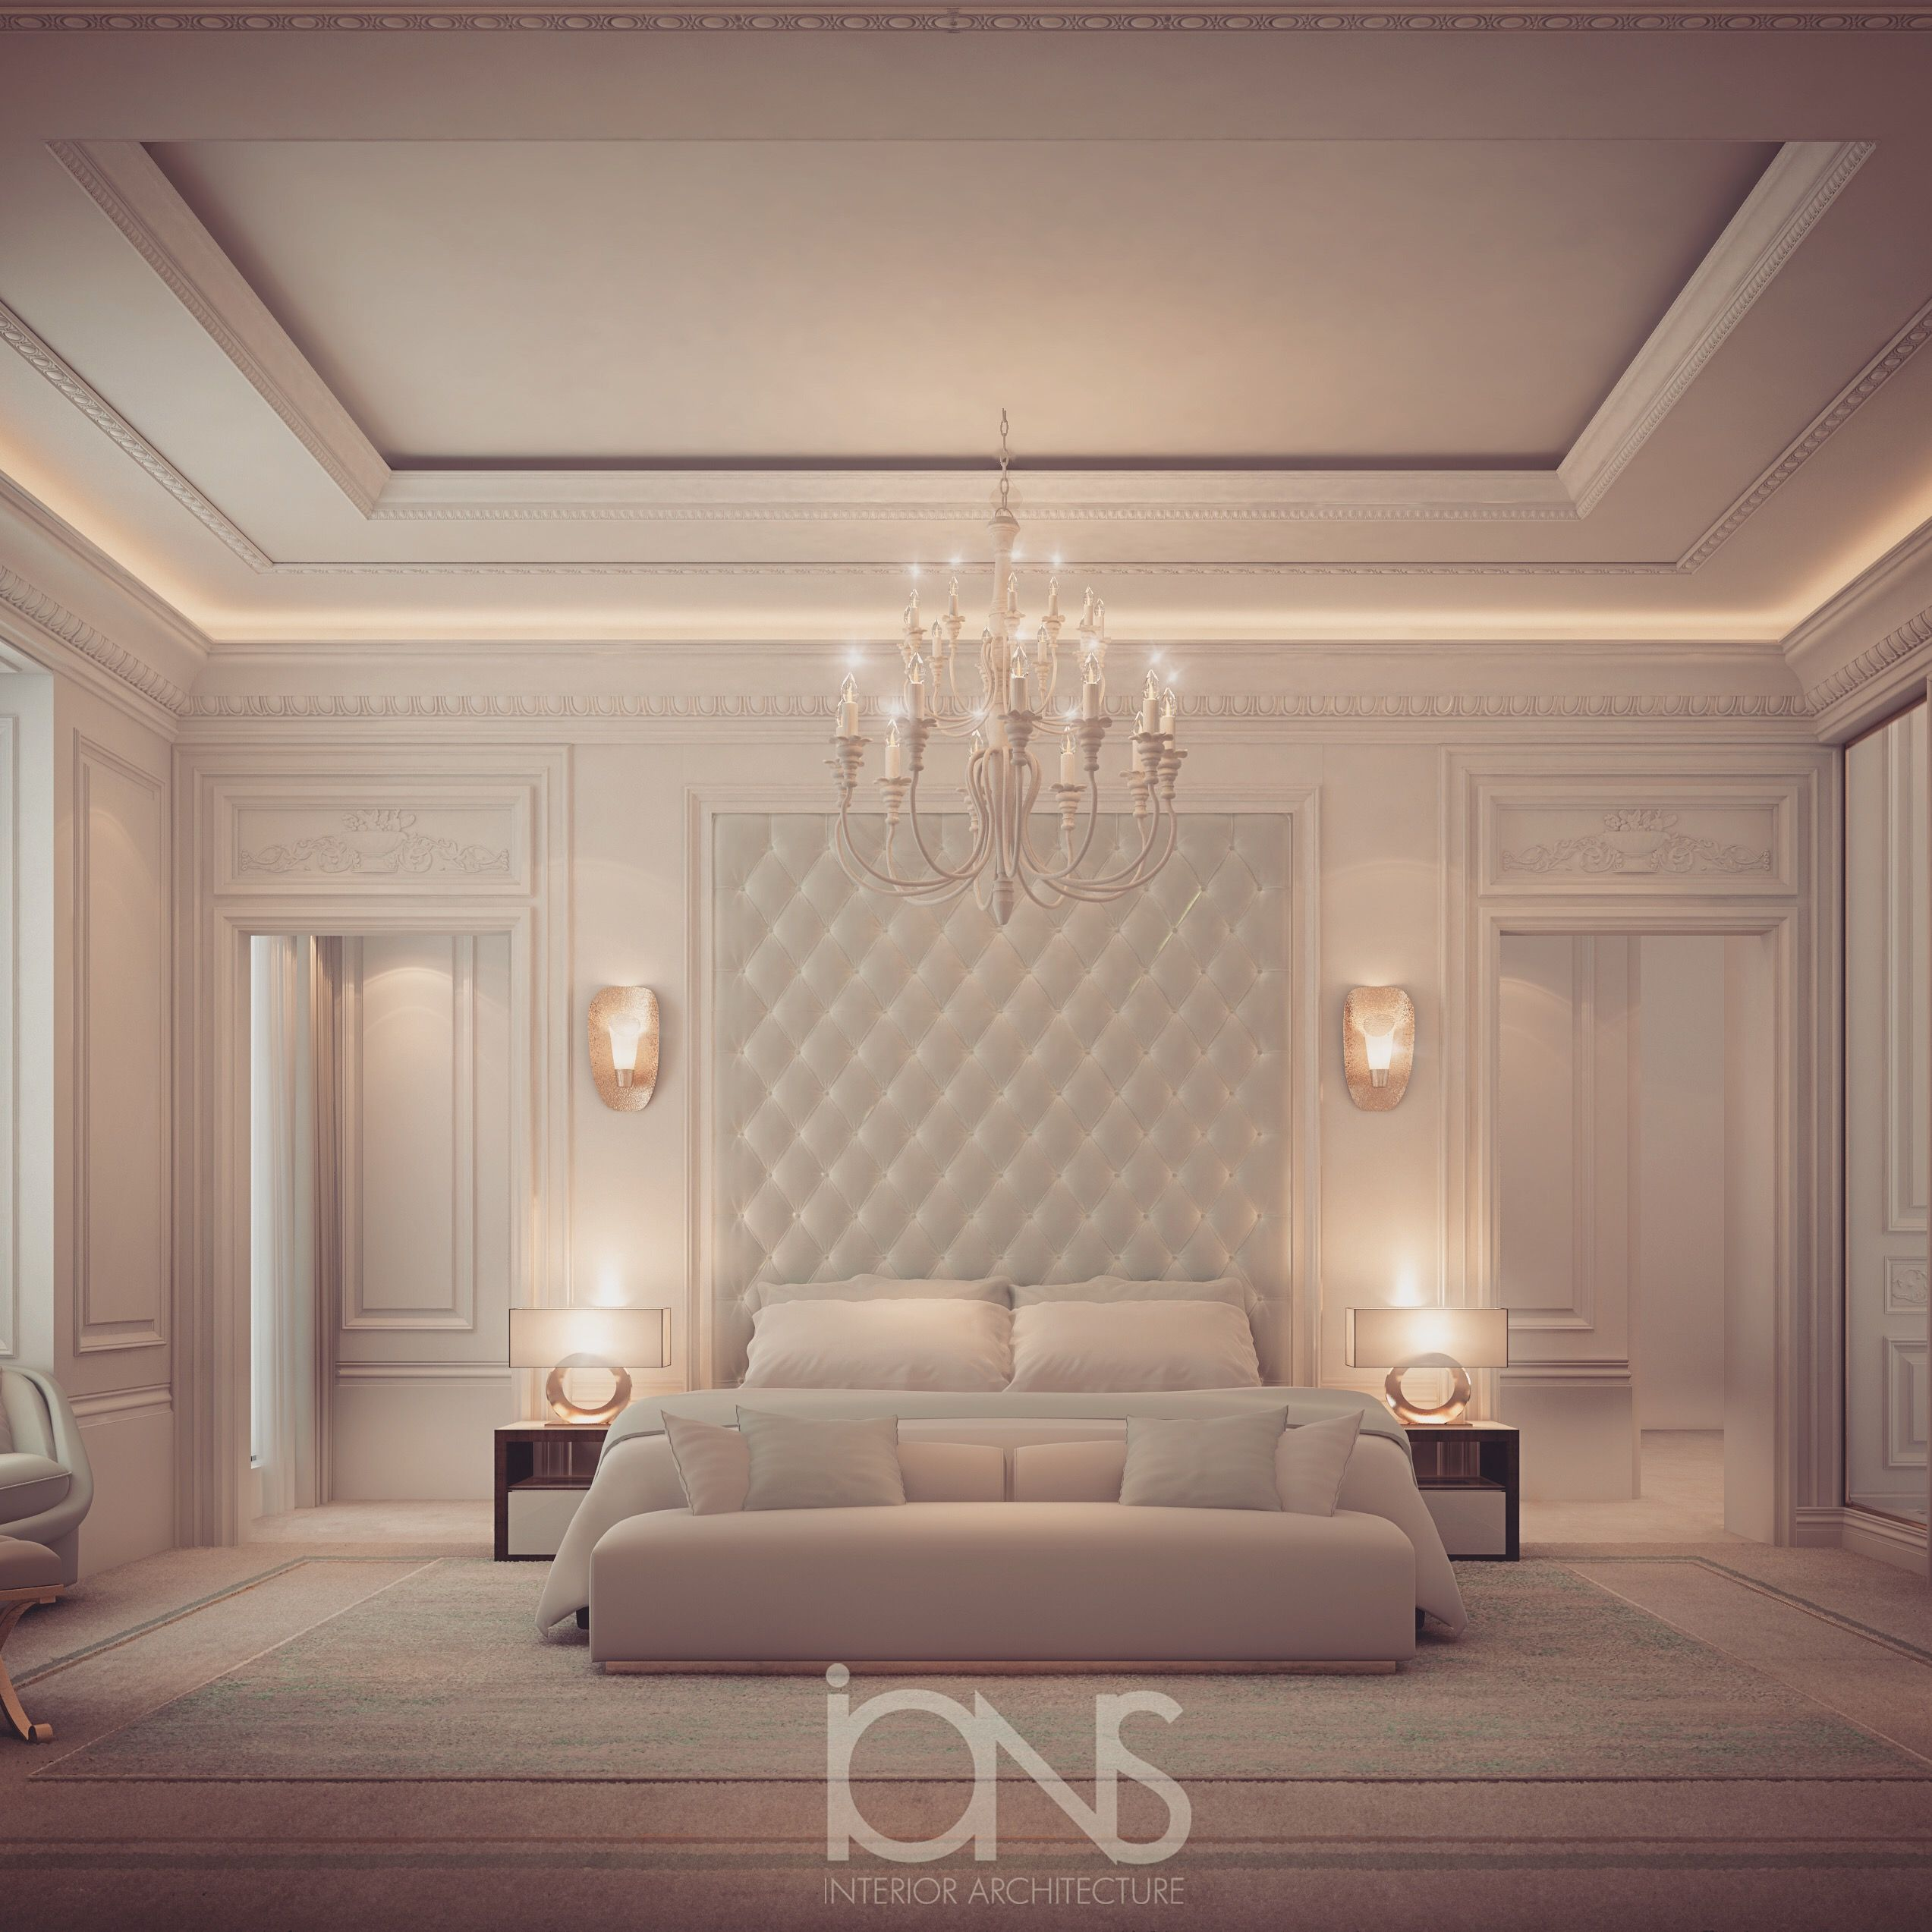 Interior Bed Room Design Bedroom Interior By Ions Design Bedroom Designs By Ions